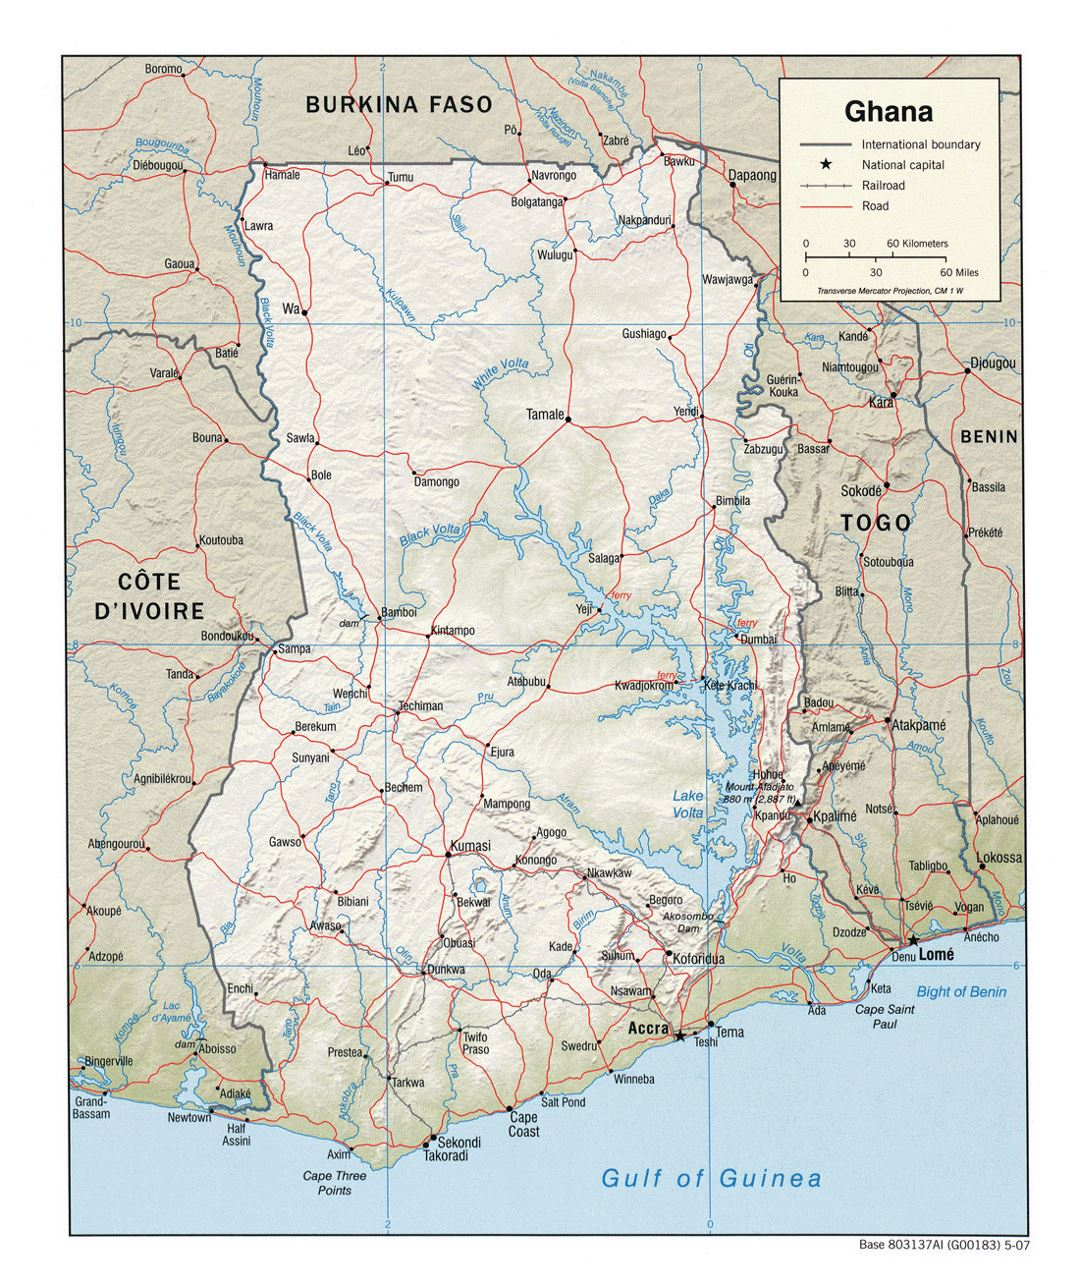 Detailed political map of Ghana with relief, roads, railroads and cities - 2007